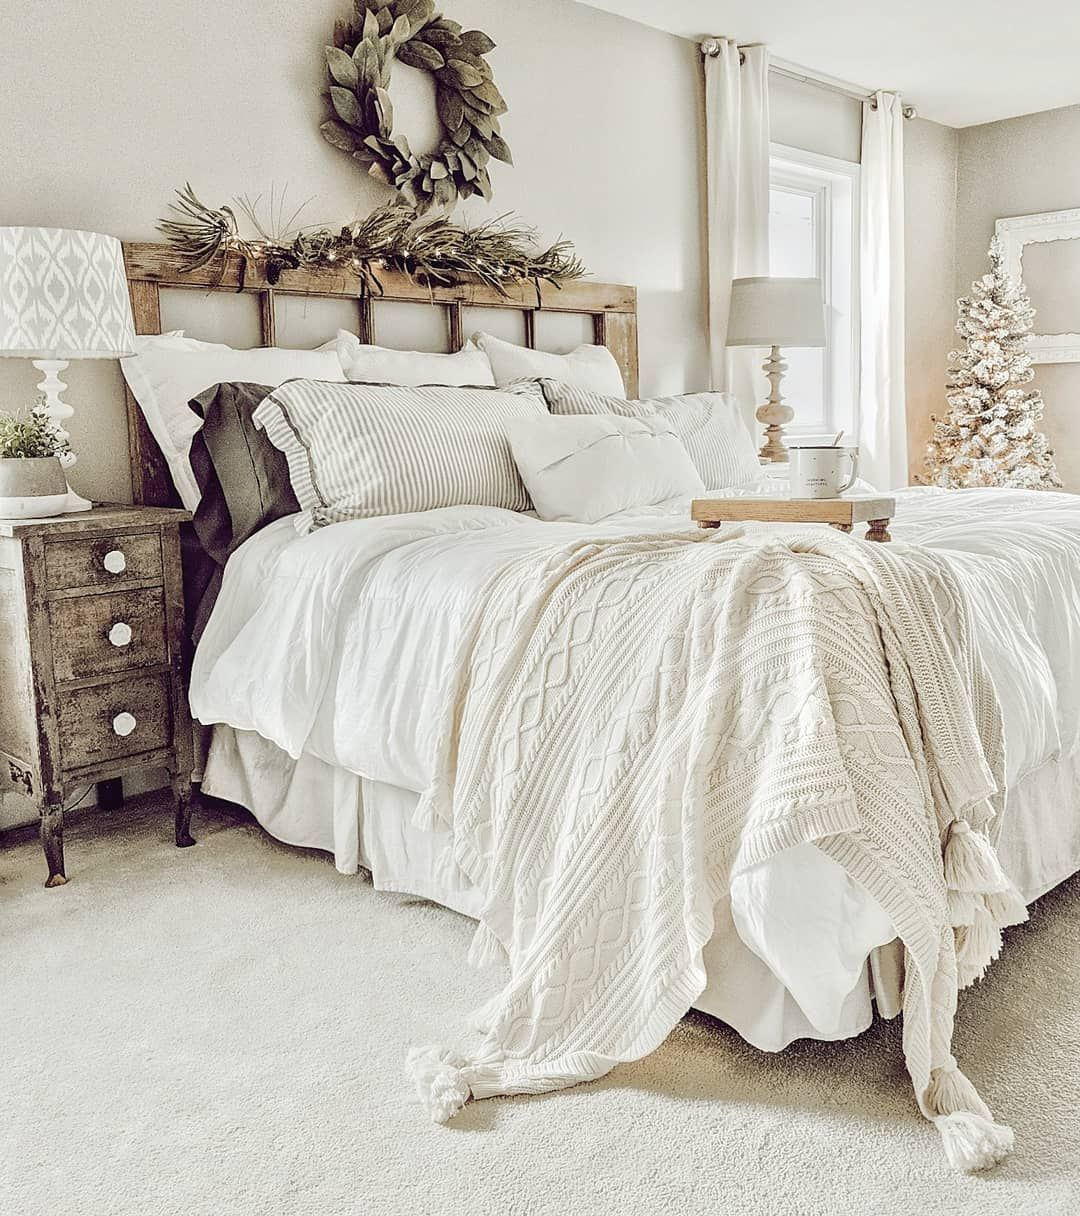 Good Morning We Are Almost To Friday I Promised I Would Share More Before And After Pictures Of O Vintage Bedroom Decor Bedroom Vintage Remodel Bedroom Next up master bedroom